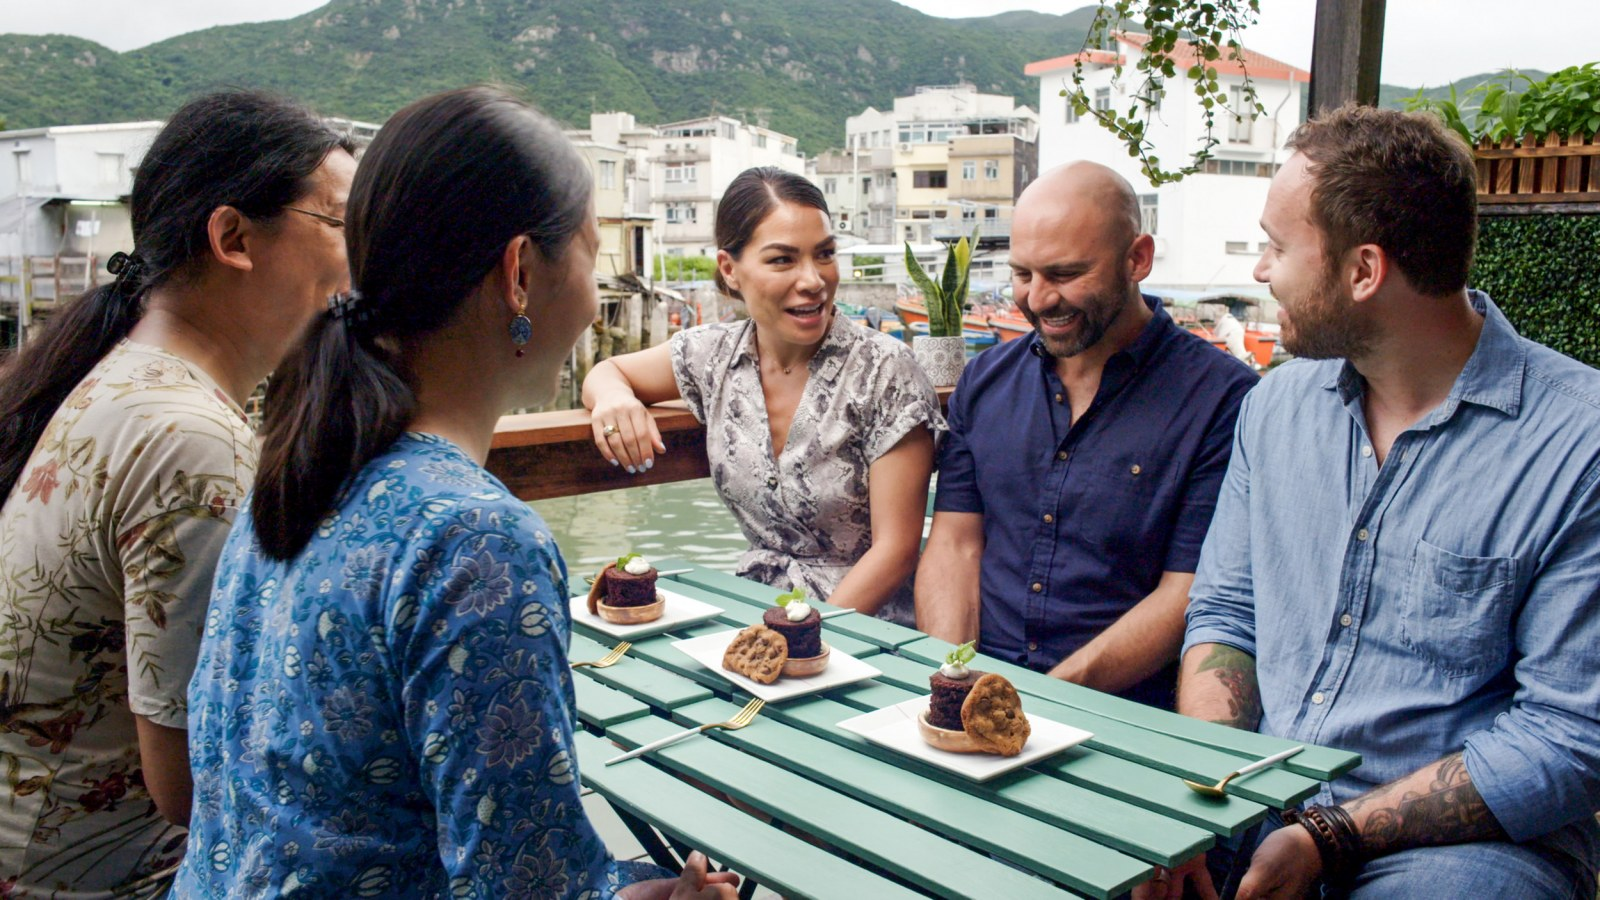 Restaurants On The Edge Hosts Dish About New Netflix Makeover Show